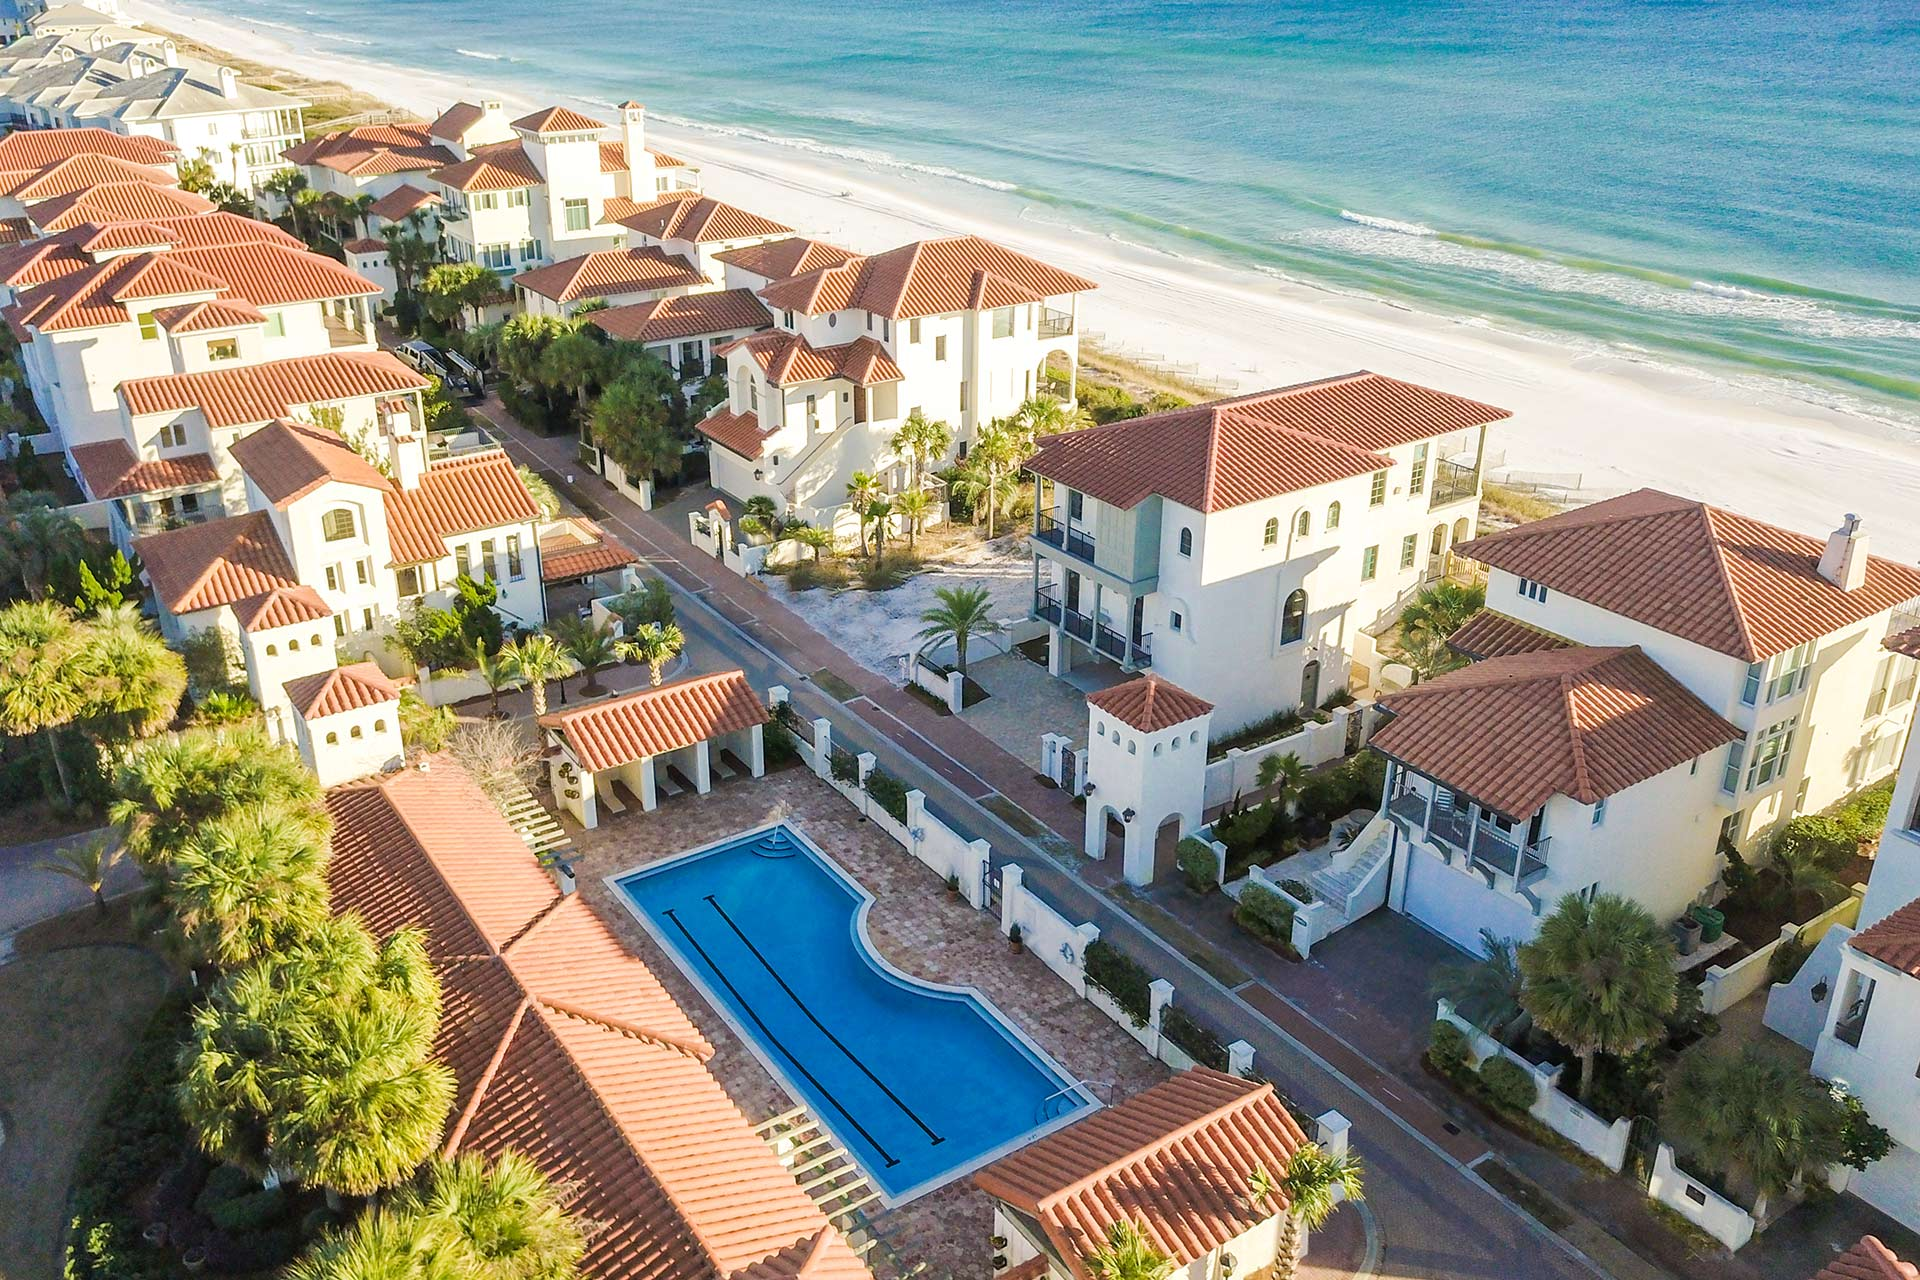 Vacation Rentals Near Destin